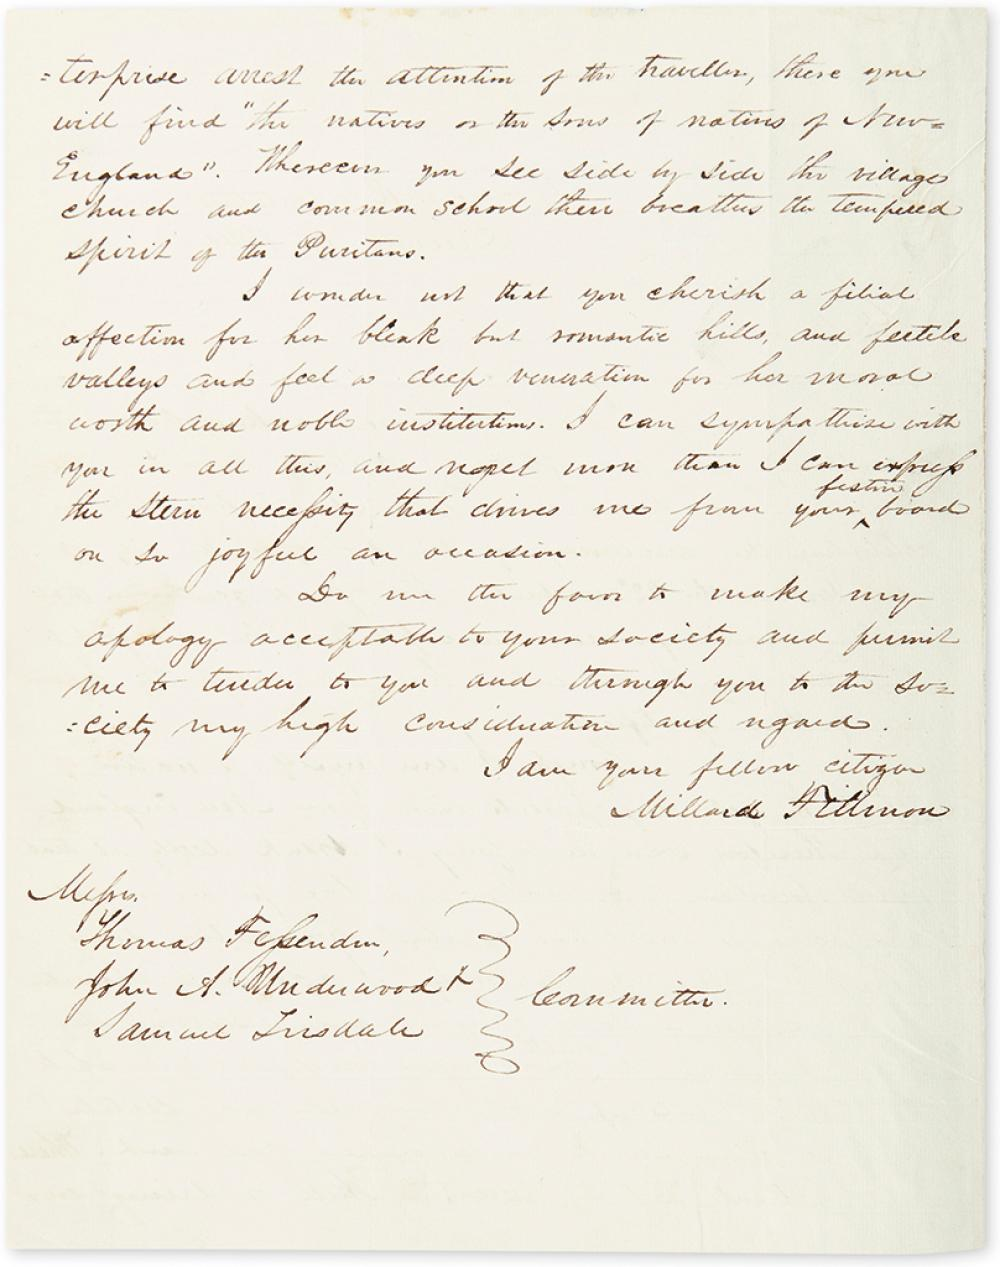 FILLMORE, MILLARD. Autograph Letter Signed, as Representative, to Thomas Fessenden, John A. Underwood, and Samuel Tisdale,